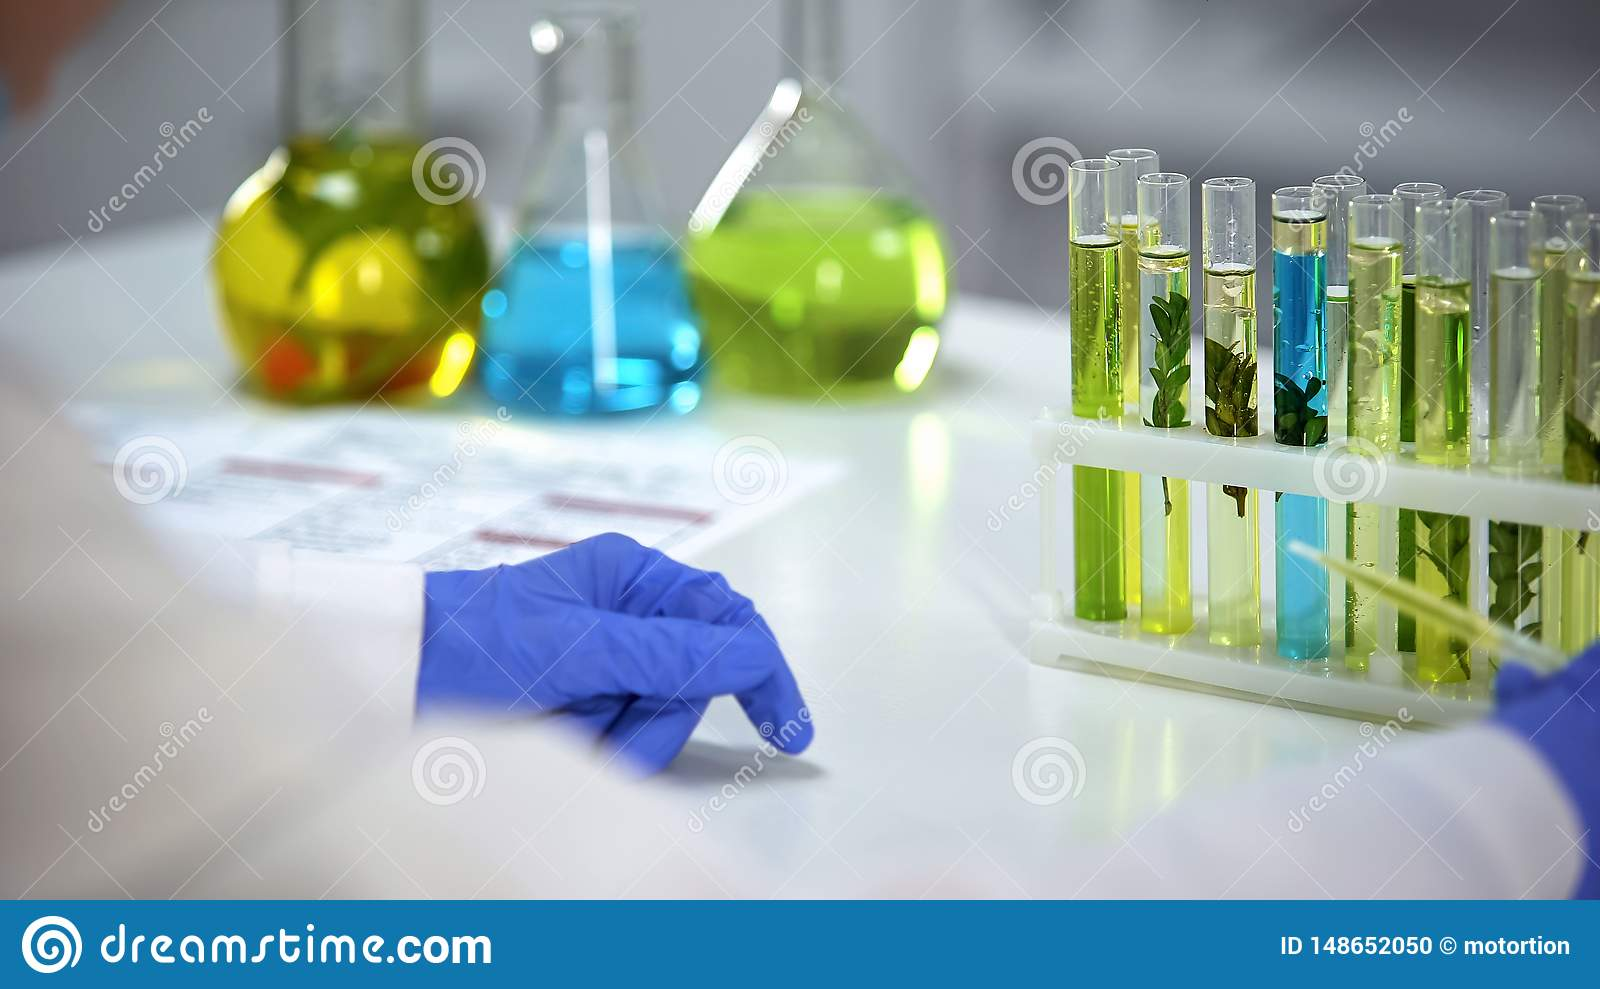 Laboratory worker holding dropper with oily yellow liquid, cosmetology extract